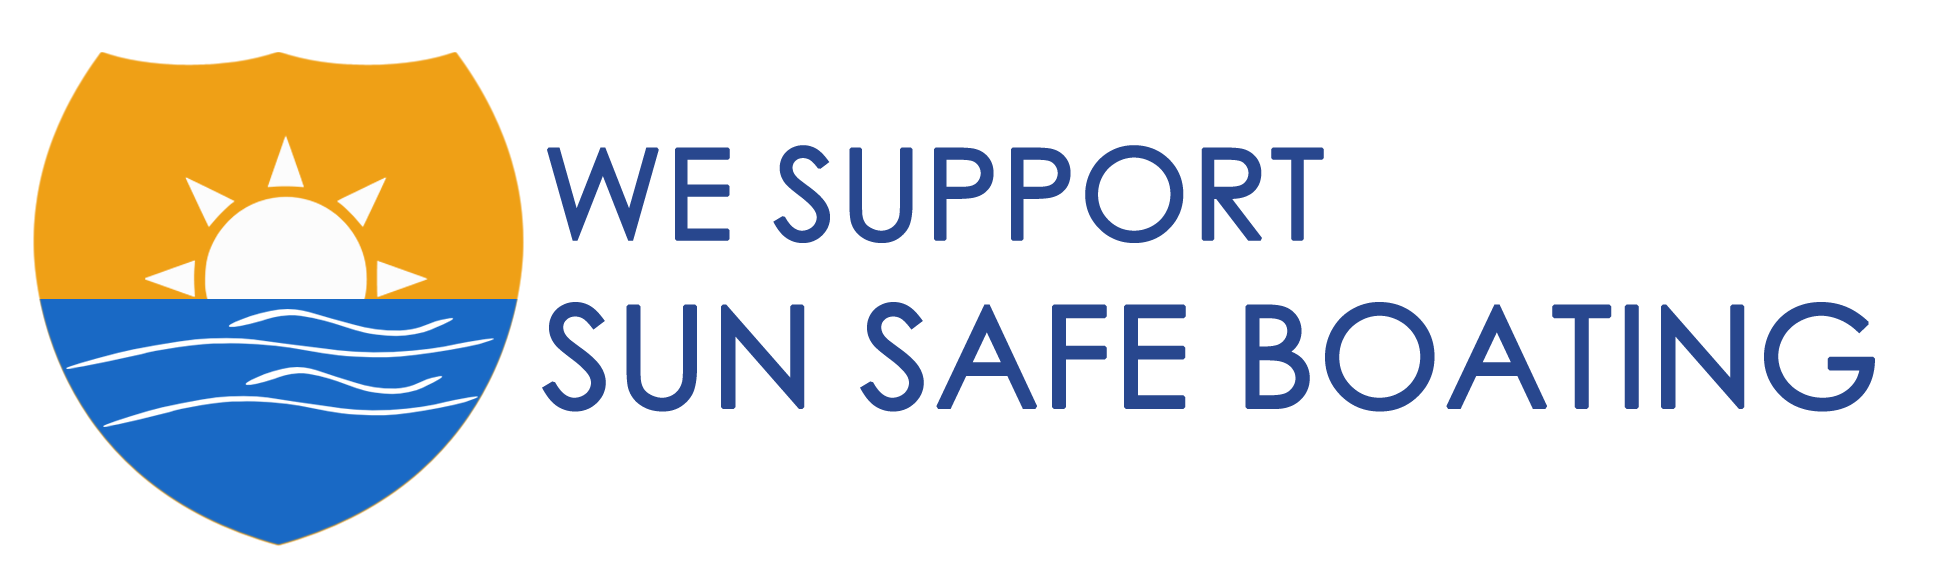 we support sun safe boating